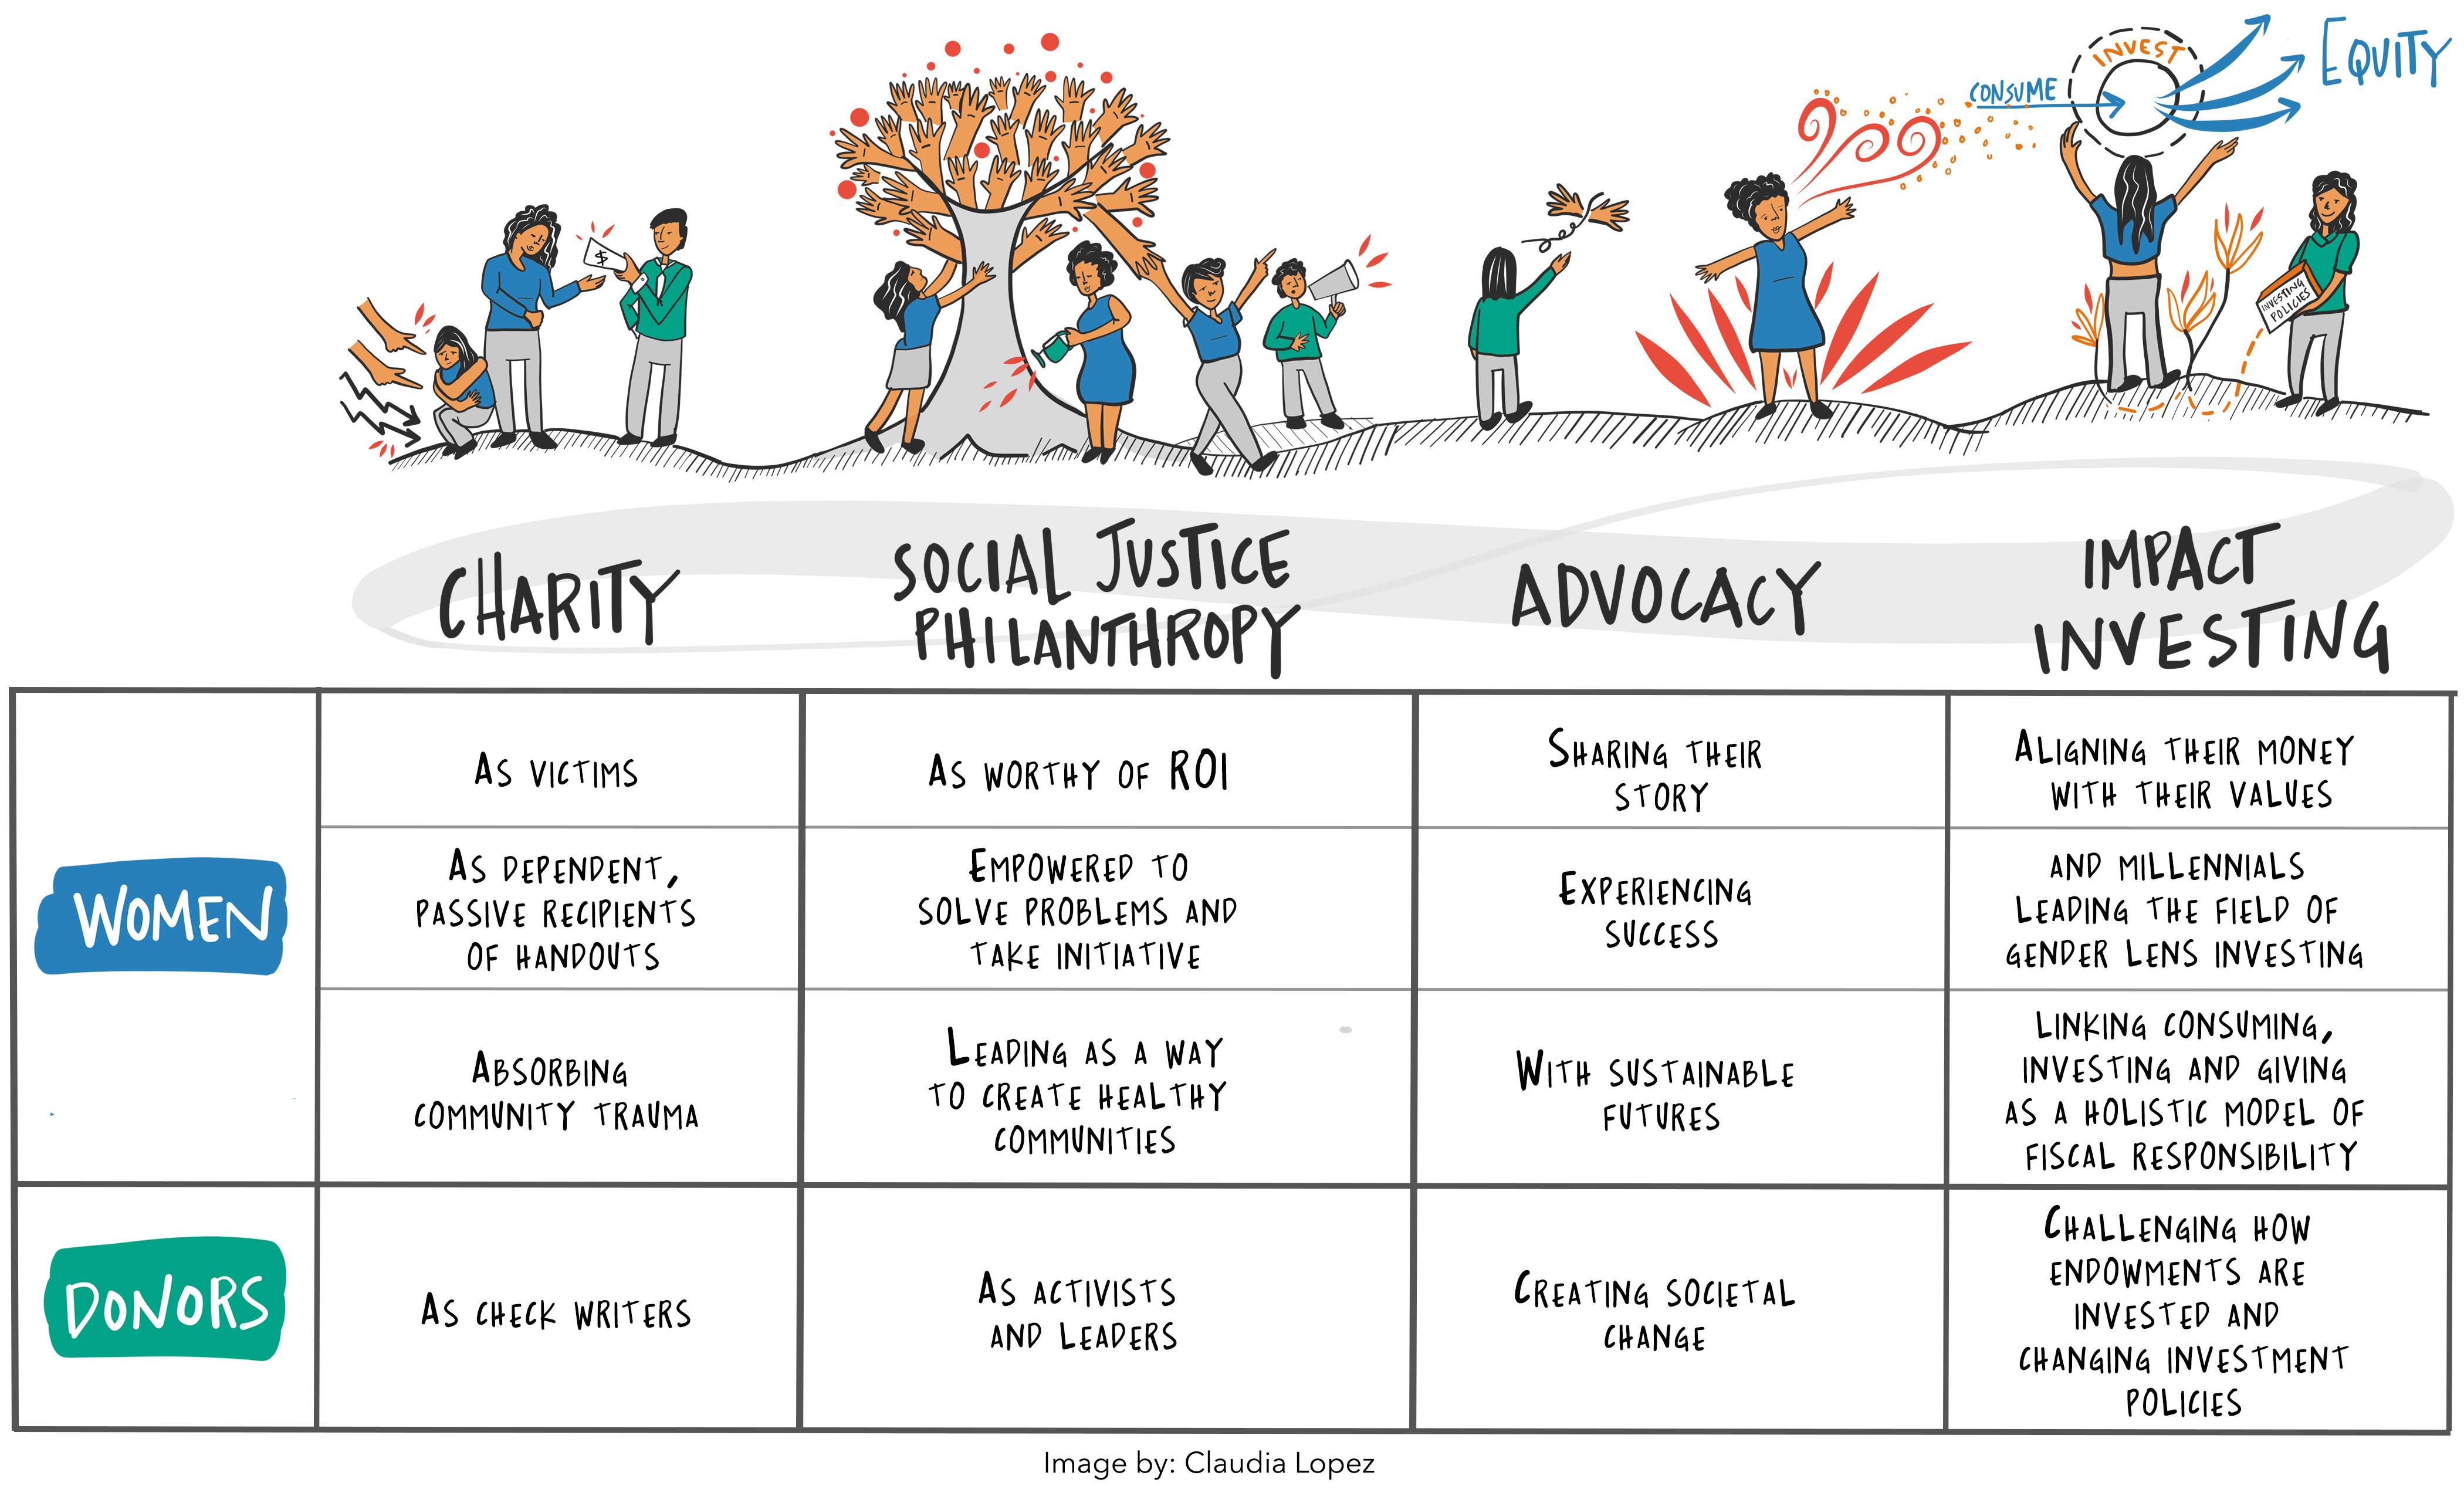 Charity to Impact Investment Illustrated Chart created for a book by Tuti B. Scott